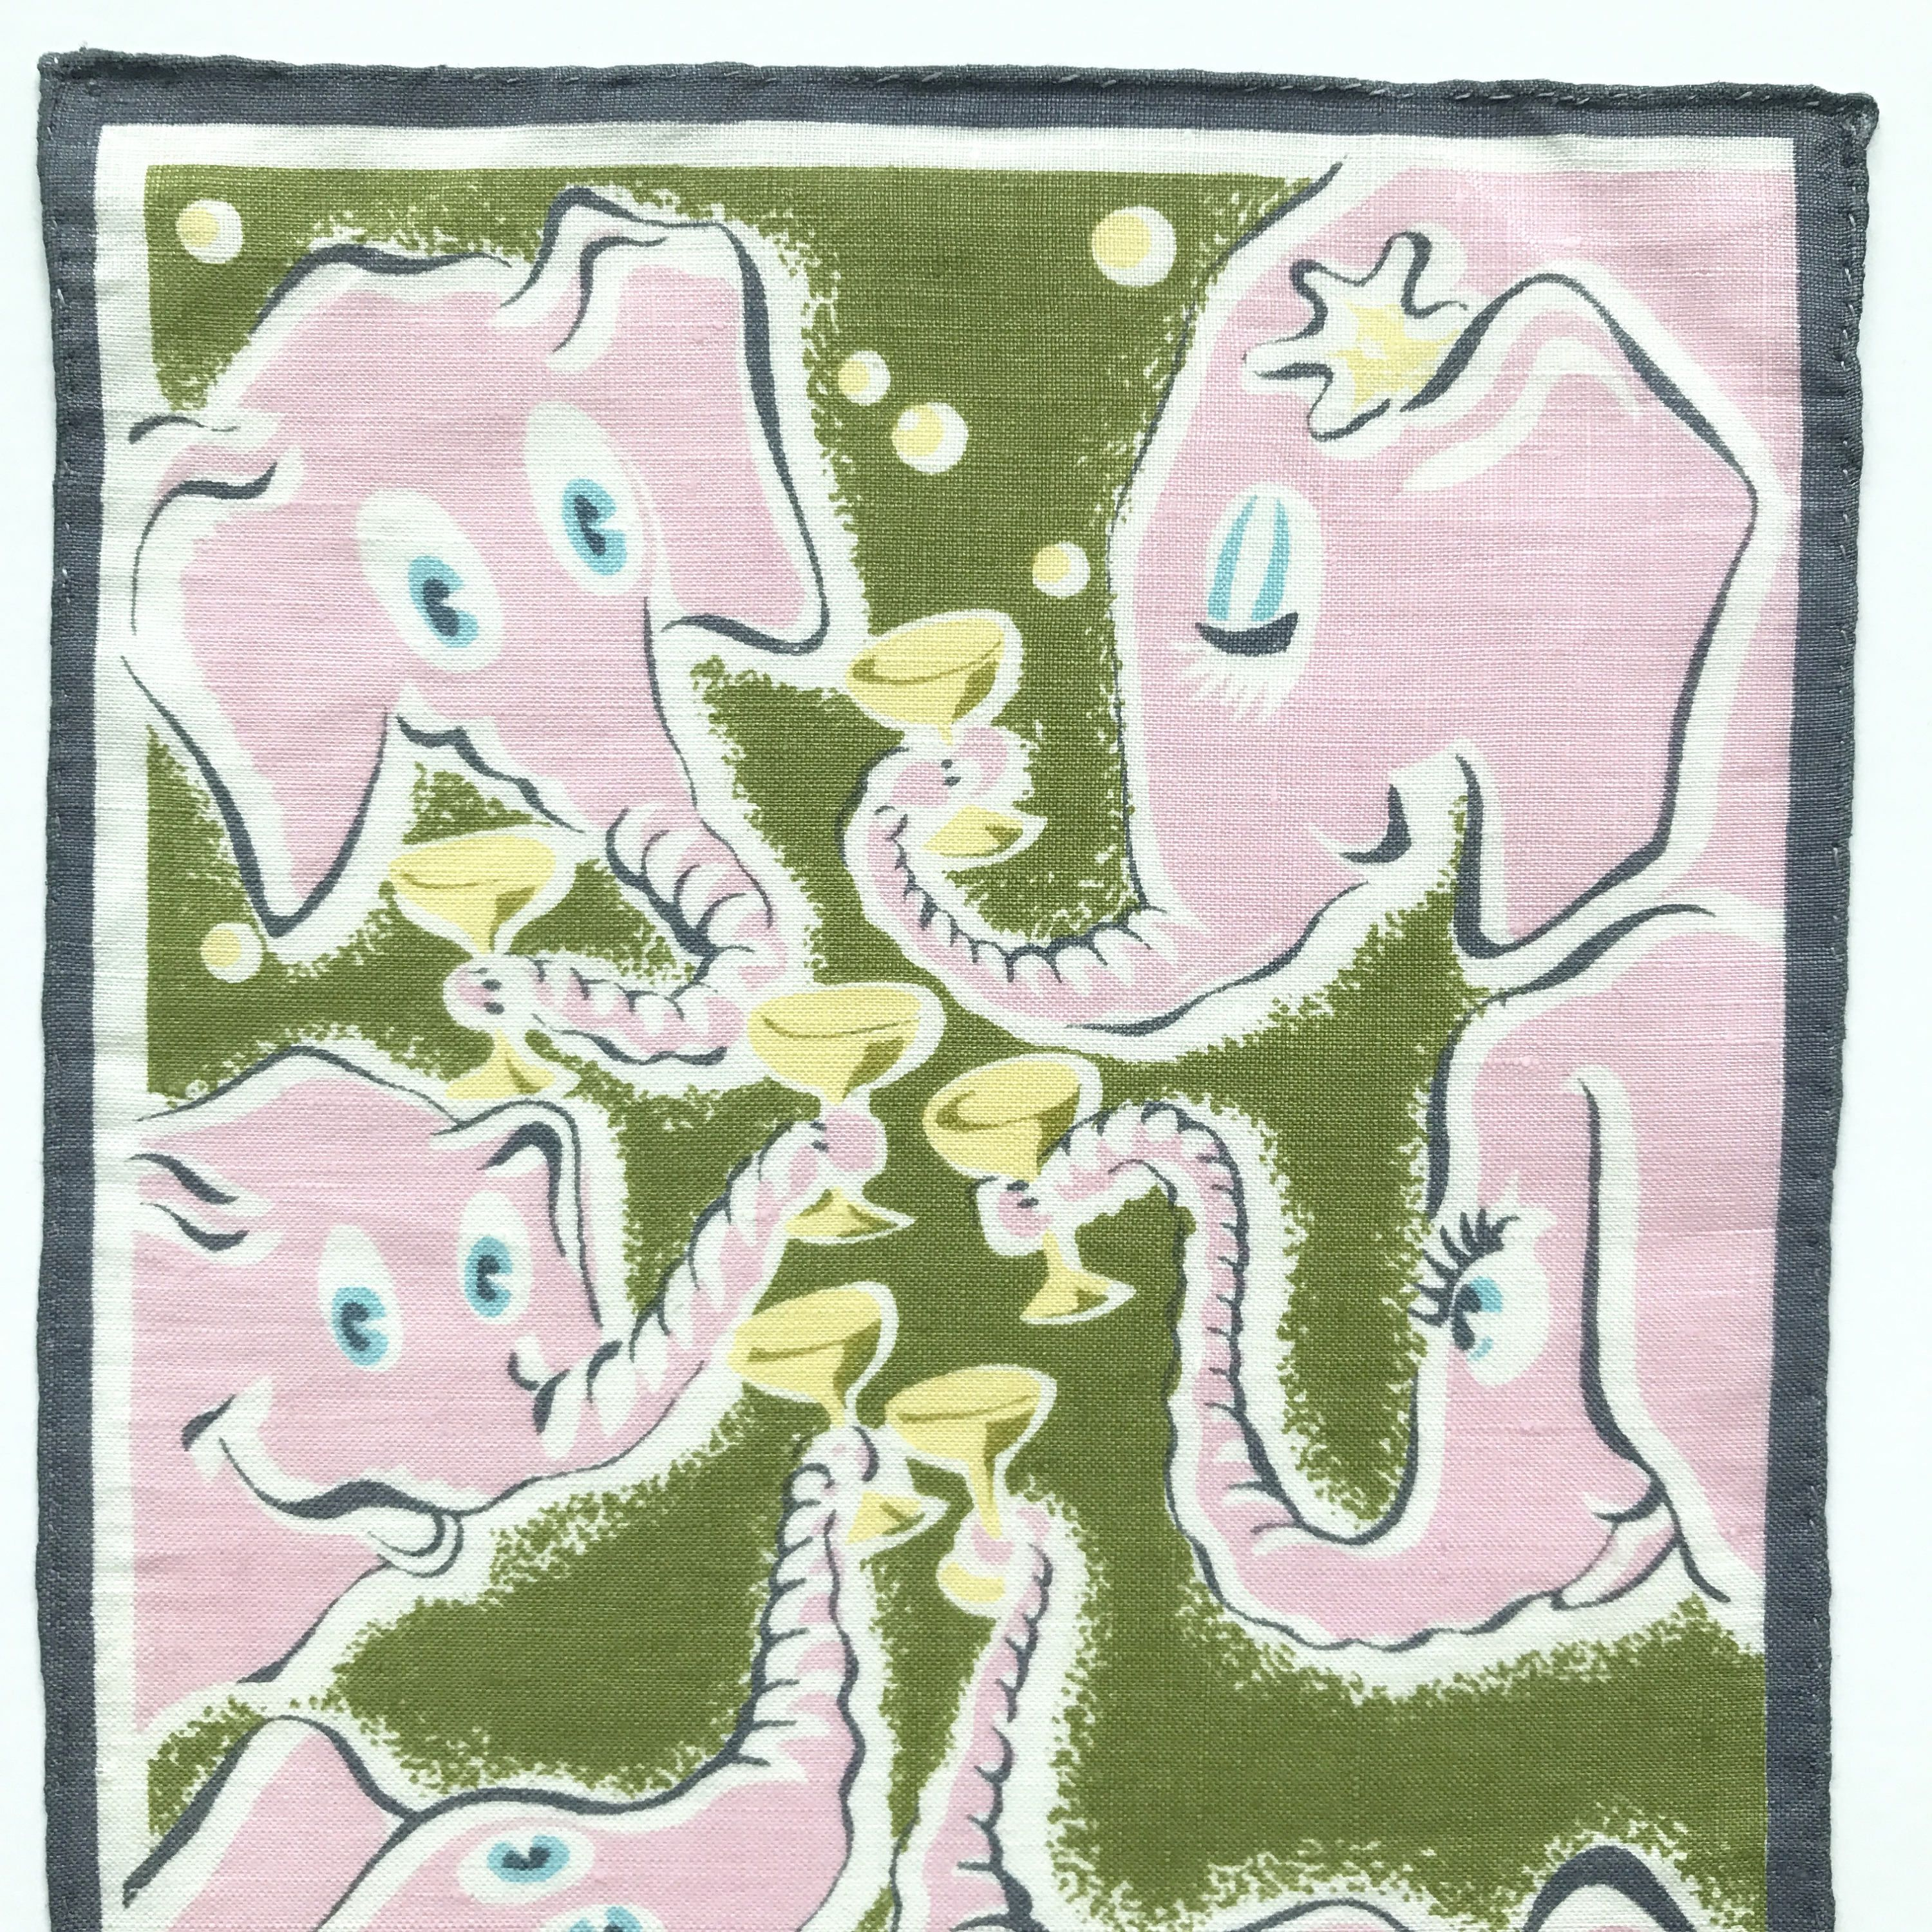 Cocktail Napkin Pink Elephants Textile Art Cheers Toast Martini Glasses by NeatoKeen on Etsy